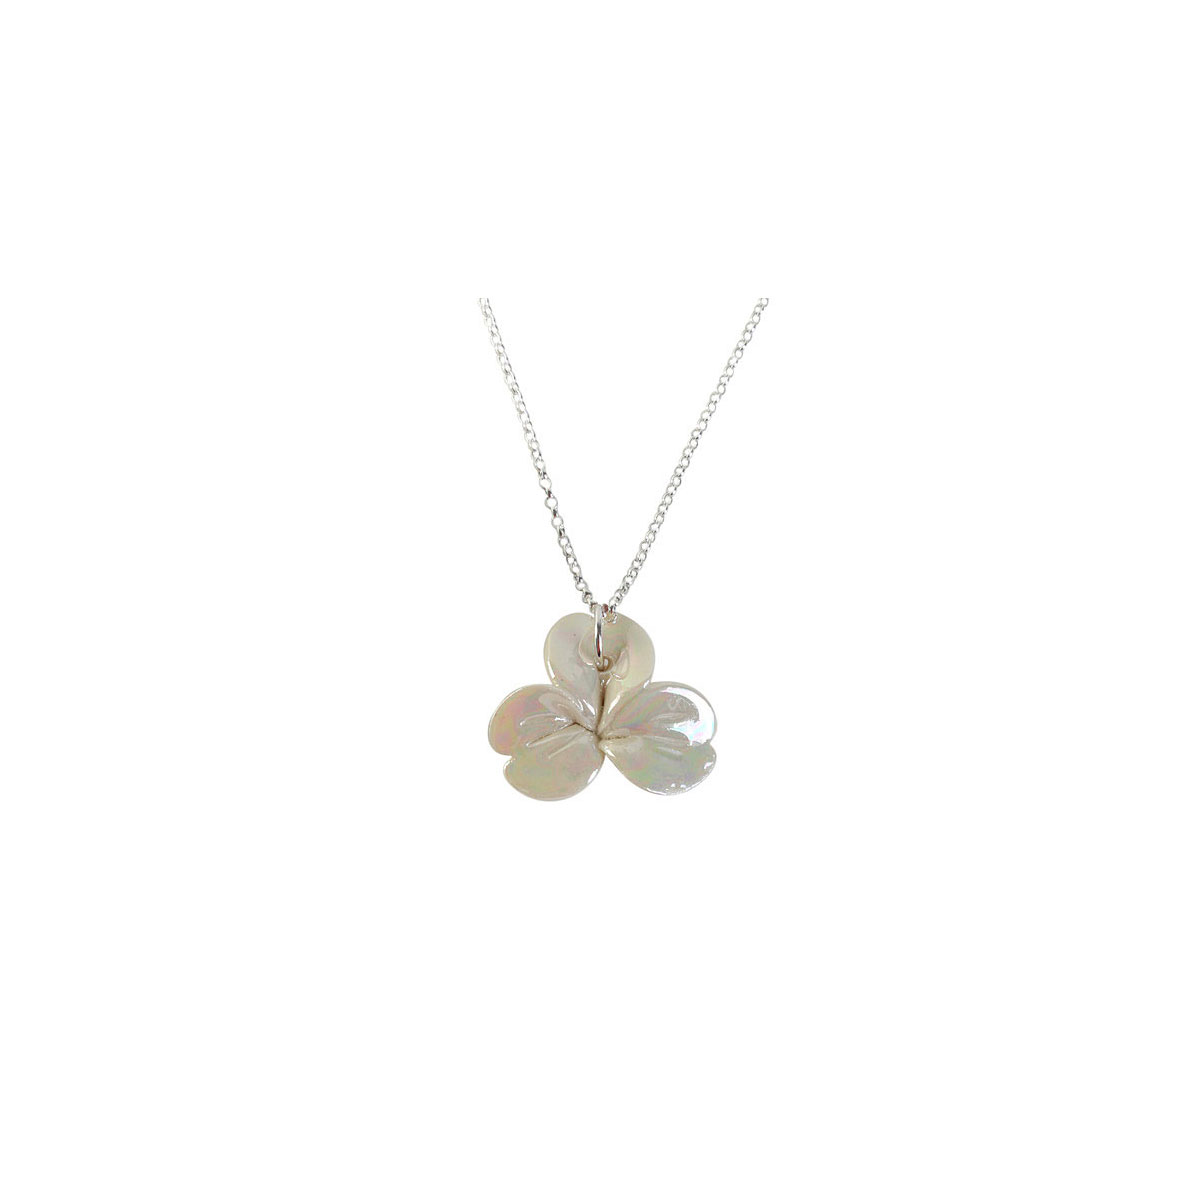 Belleek Porcelain Jewelry Shamrock Necklace Mother of Pearl